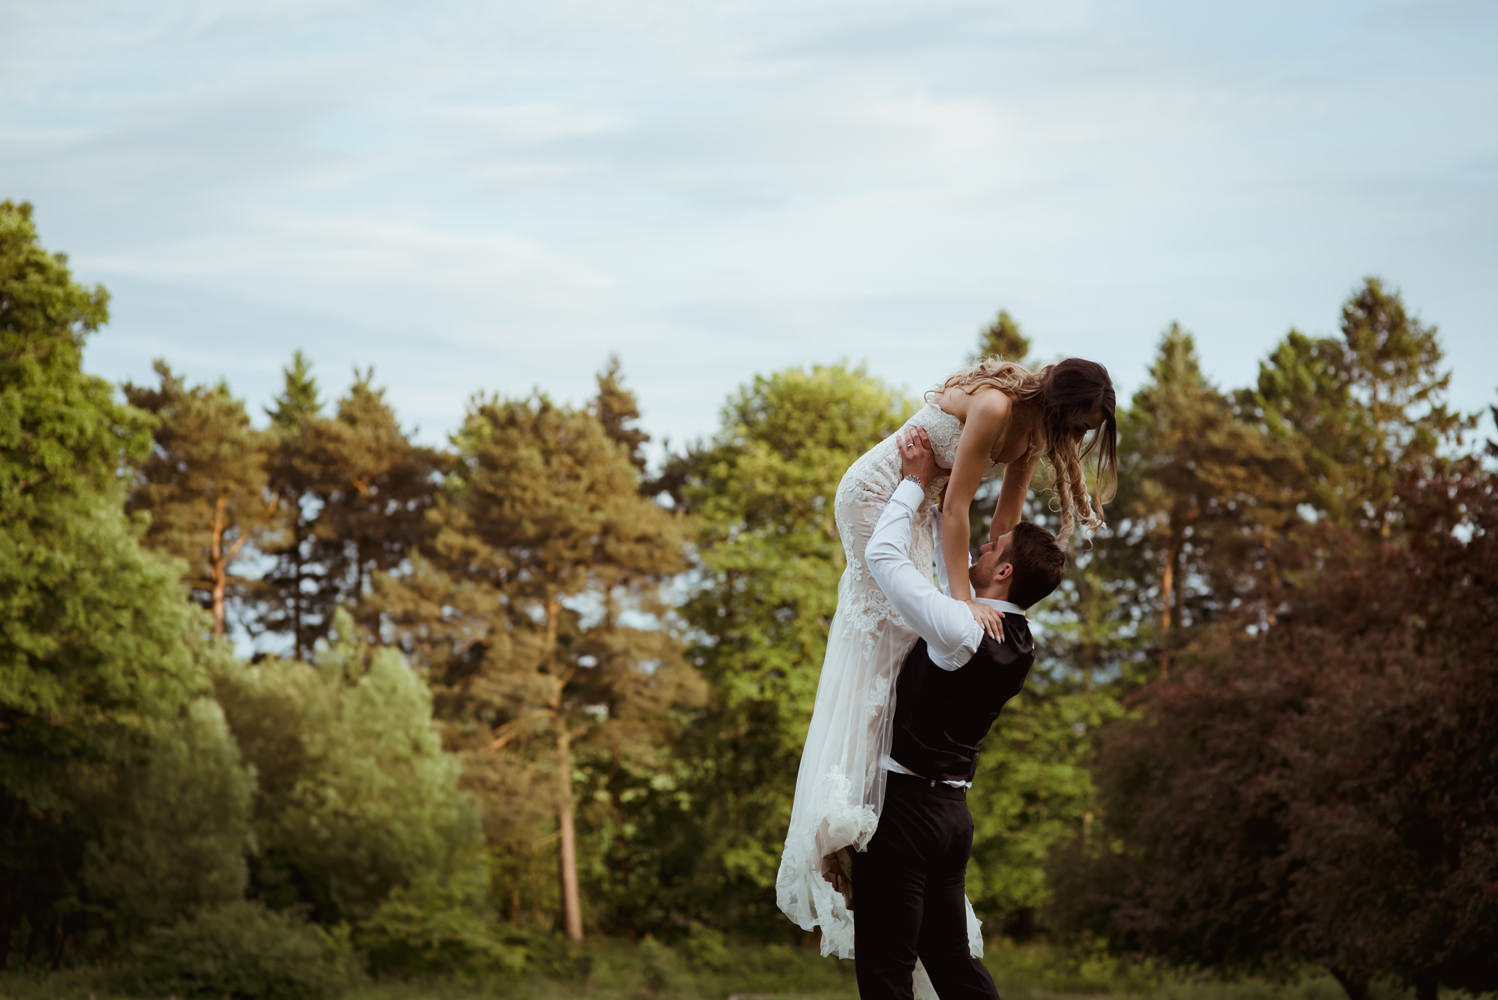 elopement-wedding-photography-scotland.jpg